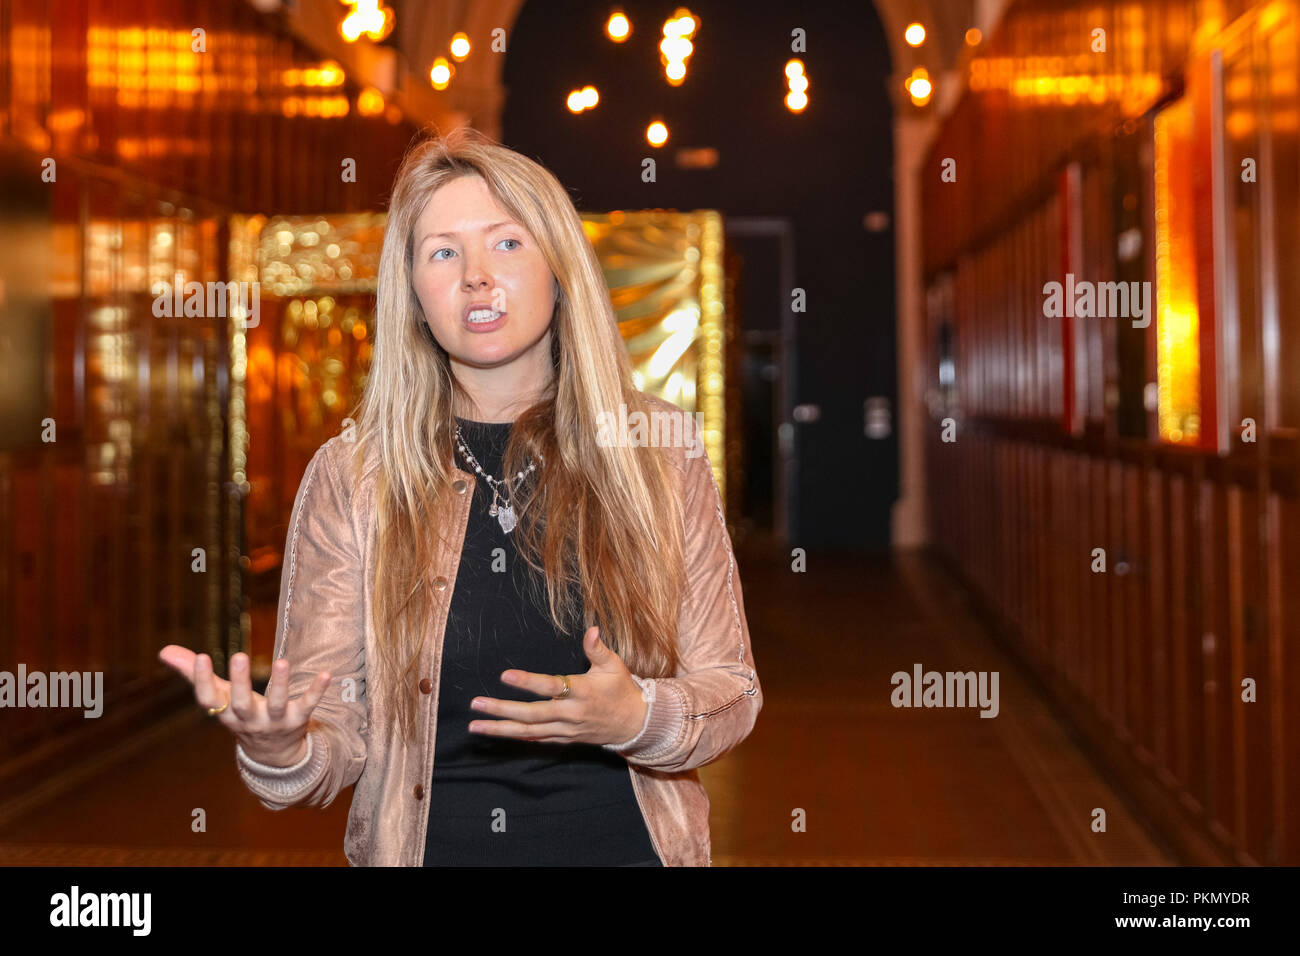 London, UK, 14th Sep 2018. Beatie Wolfe.  'The Art of Music in the Digital Age' by musician Beatie Wolfe, this 'Raw Space Chamber' anechoic chamber is entirely in gold colours. London Design Festival celebrates and promotes London as the design capital of the world. It returns to venues and institutions across the city from 15-23 September 2018. Credit: Imageplotter News and Sports/Alamy Live News - Stock Image